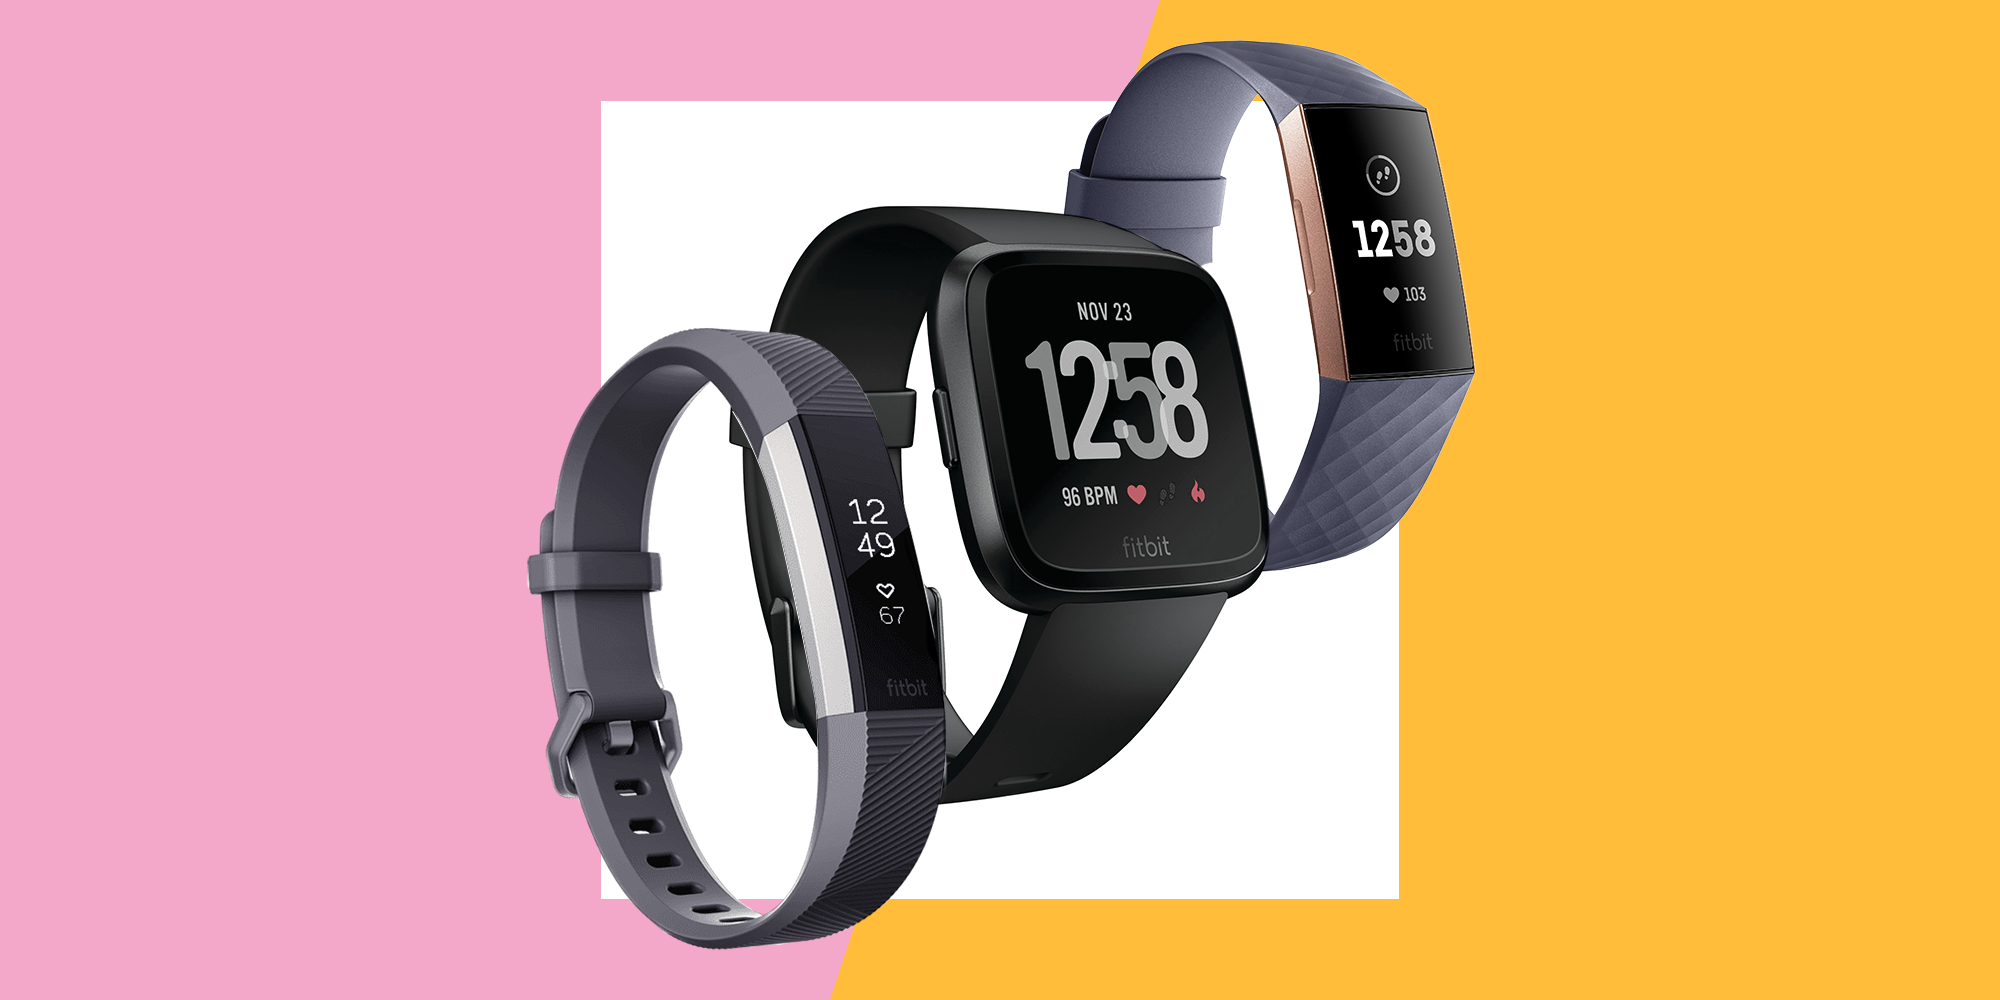 Fitbit's Alta HR, Charge 3, And Versa Trackers Are Up To $30 Off Right Now